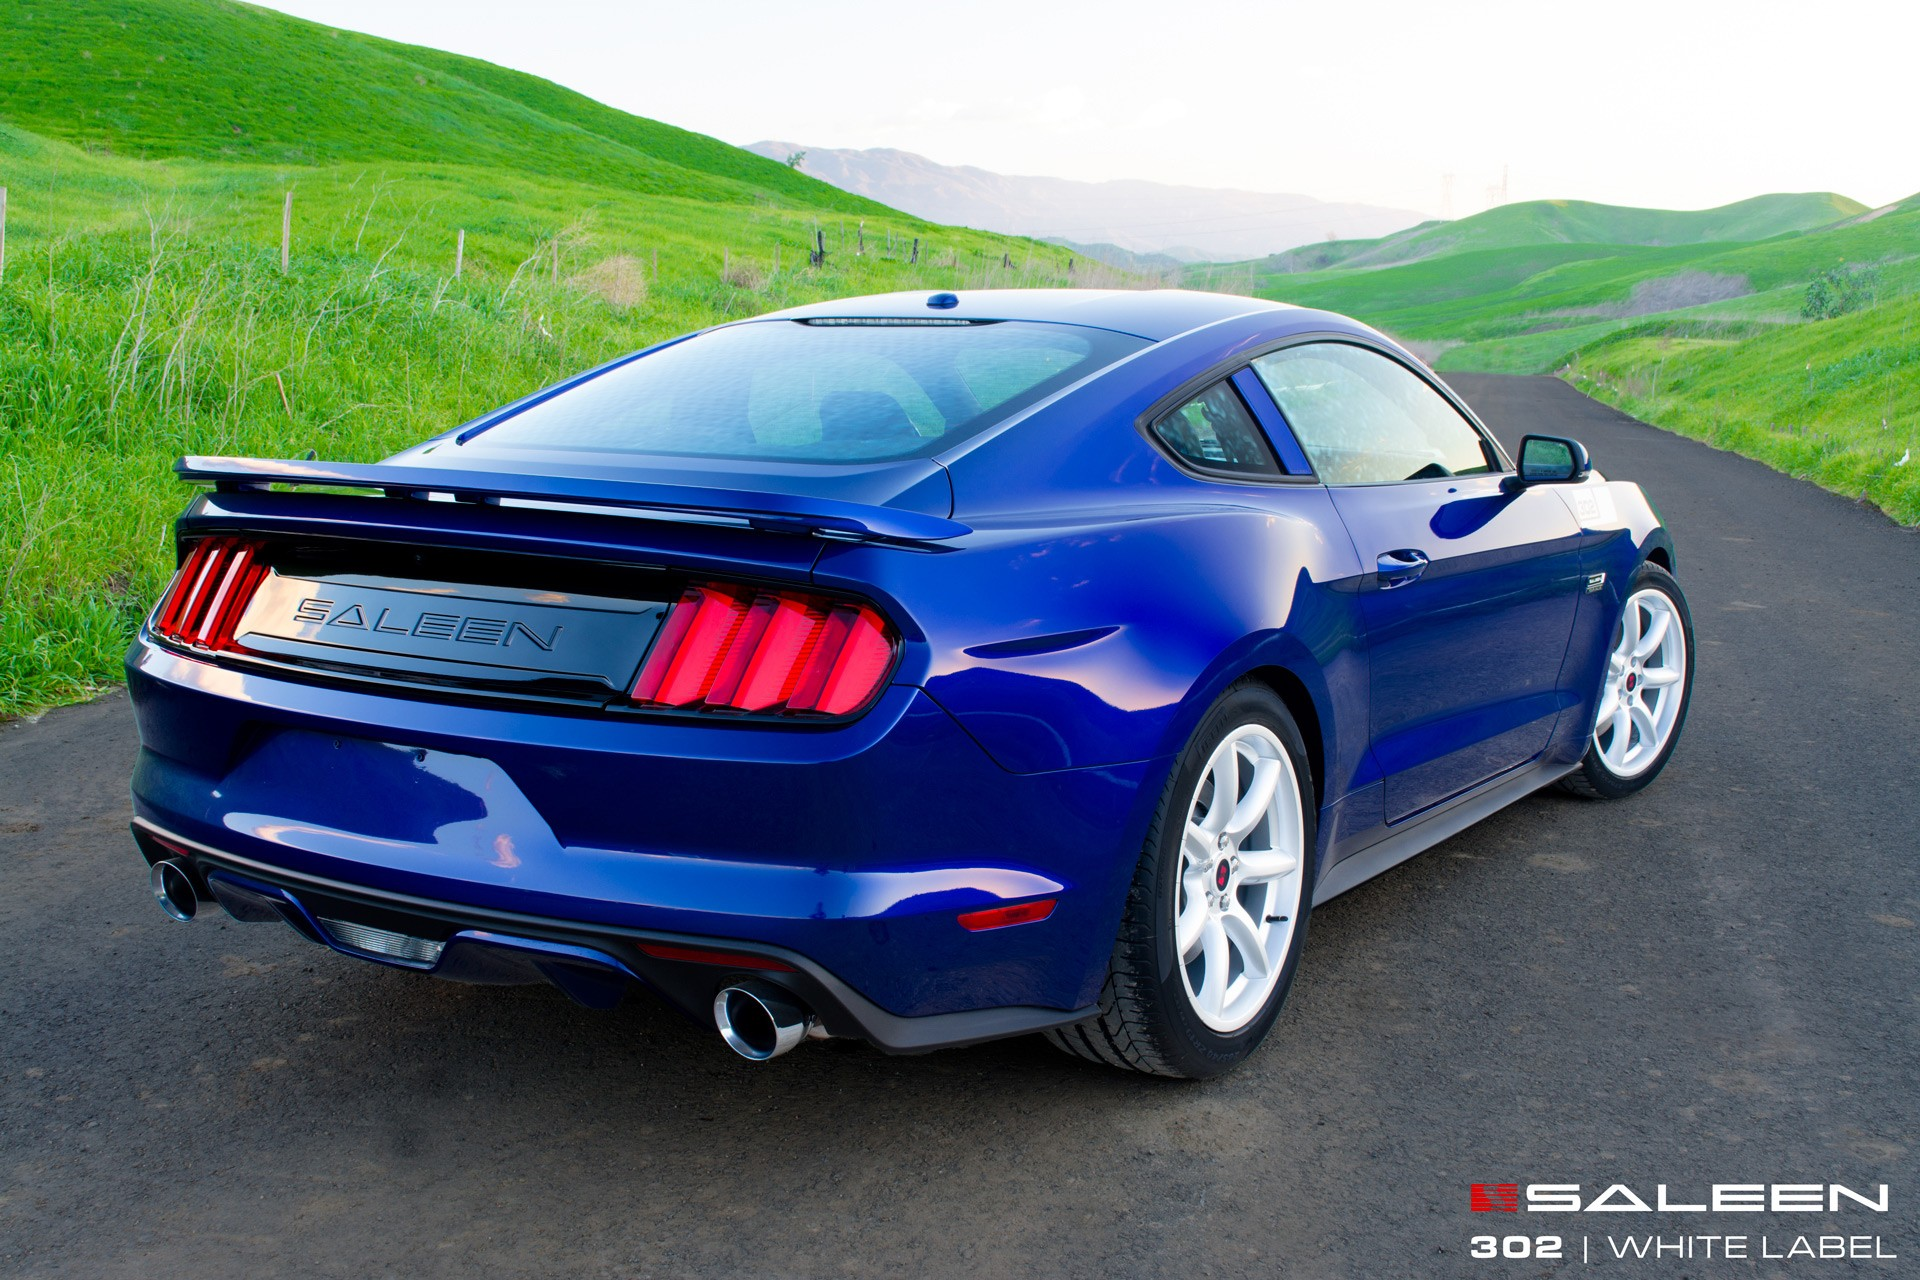 2015 saleen mustang 302 white label